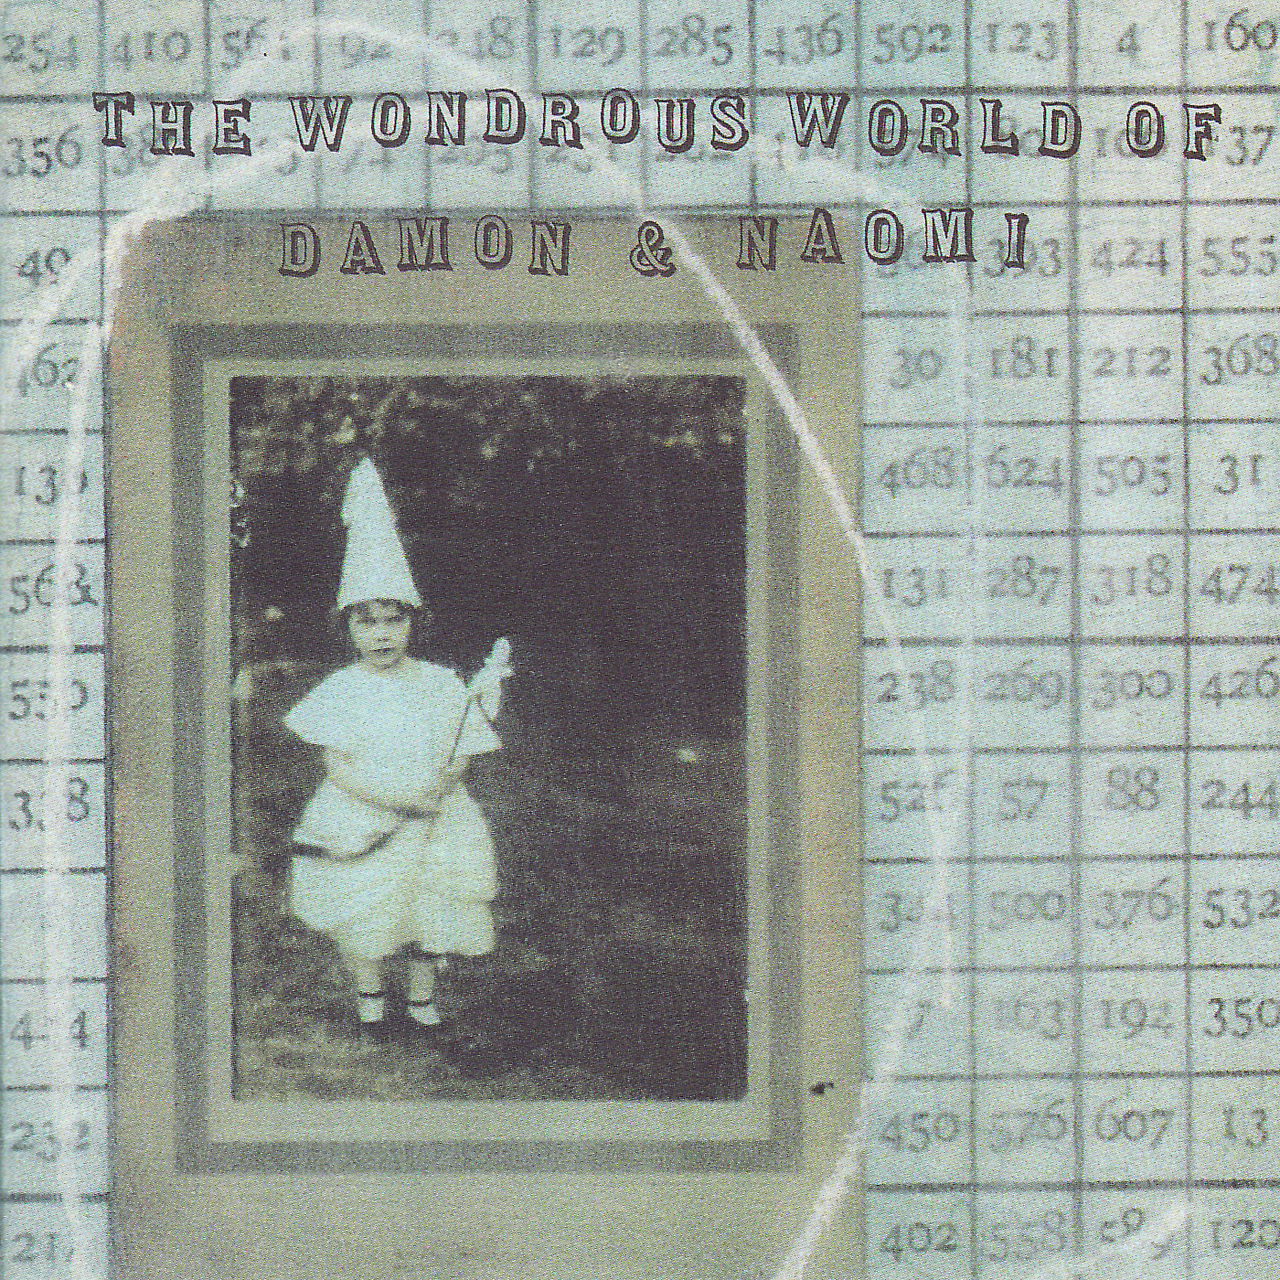 The Wondrous World of Damon & Naomi sleeve image